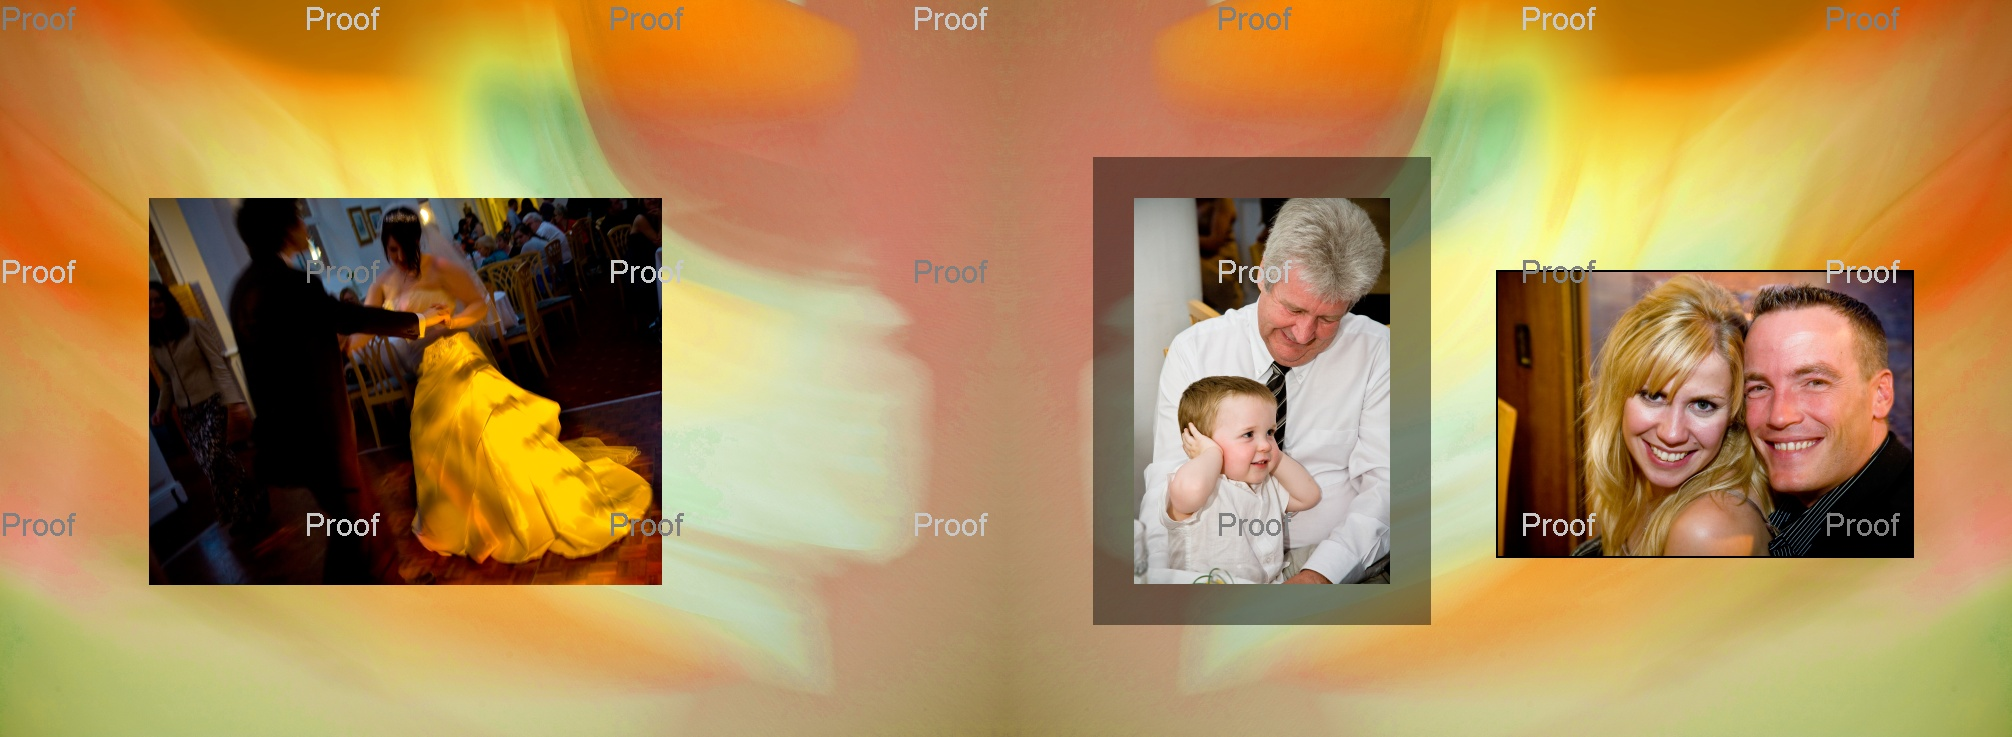 pages 80-81 crestive wedding storybook pictures of first dance and family